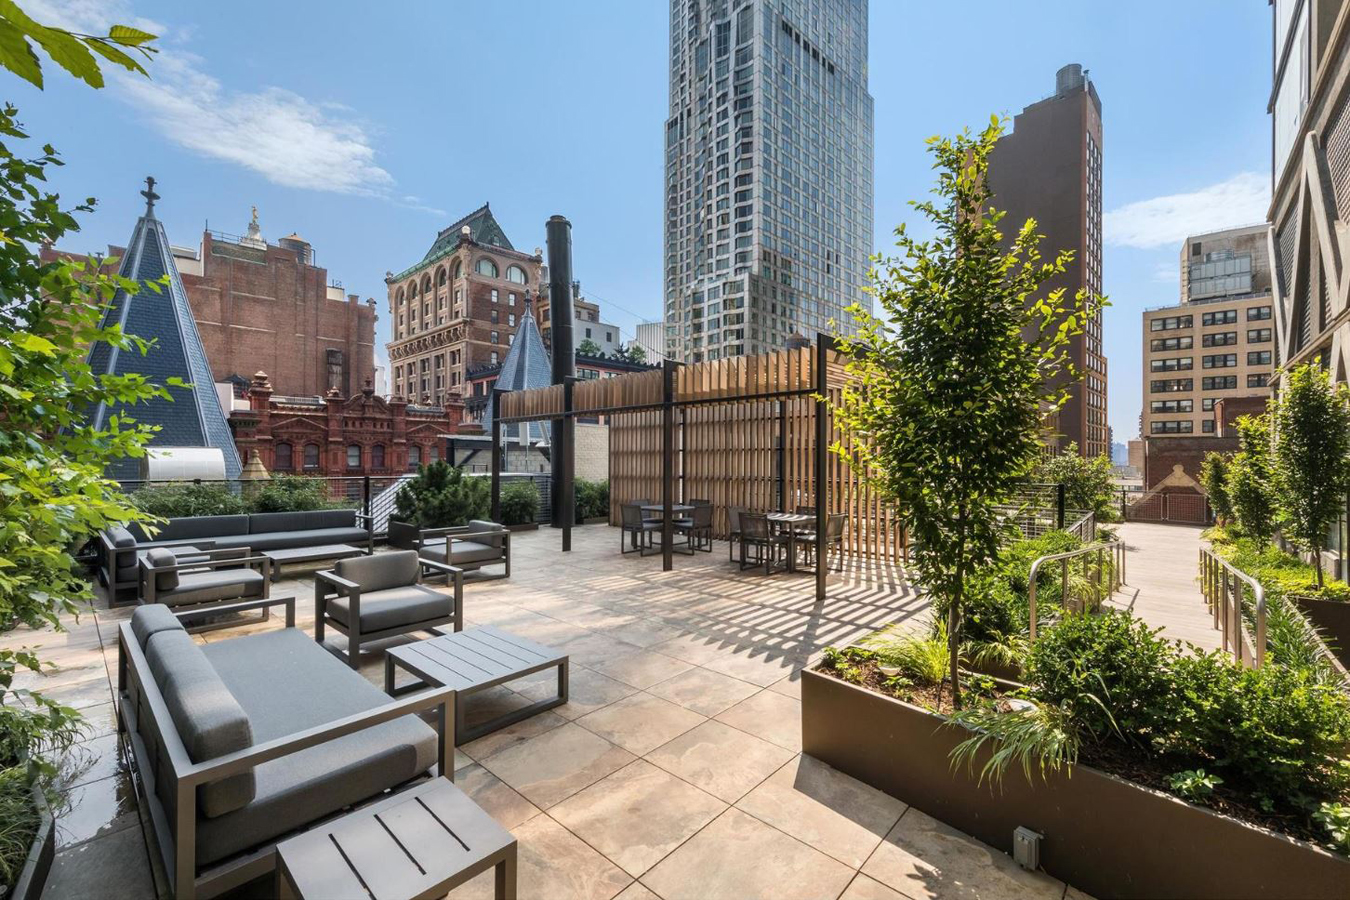 """This new construction stands adjacent to The Beekman, a newly renovated historic hotel with commendable service. The tower enjoys arched arcades, ornate railings, and a very large, sky lit atrium. This red terra-cotta building was imagined by Gerner, Kronick and Valcarel and frames exquisite 360 degree views of the Manhattan skyline on its modern canvases.  Inside the residences, the vision of Thomas Juul-Hansen exhibits generous and expansive floor plans, huge windows and soaring ceiling heights. The interior features rooms and spaces that promise a luxurious, contemporary and convenient living to its residences.  A carefully -curated amenity package has been prepared for the residents, offering a private dining room, doorman and concierge services, a media room, expansive rooftop terrace, elevator excess and a state-of-the-art fitness center. Amongst all these benefits, the residents can also enjoy priority reservations for the hotels Temple Court and Keith Mc Nally's Augustine.   CITY REALTY ARTICLE   The Beekman Residences are 68 condominiums in a 51-story tower at 115 Nassau Street adjacent to Temple Court, the 10-story, former 1883 office building at 5 Beekman Street with tall pyramid corners just a few feet east of Park Row at City Hall Park.  The red terra-cotta building on Beekman Street is being converted to a 287-room hotel with a very large, skylit atrium with very decorative and ornate railings and arched arcades that is very reminiscent of one of the major scenes in """"Bladerunner,"""" the famous movie that was partially shot in the famous Bradley Building in downtown Los Angeles.  The new, adjacent tower is """"a dynamic reinterpretation of the cast-iron elevation of The Beekman Atrium; exposed and engraved concrete columns create a muscular elevation that celebrates the structure of the tower,"""" according to Randy Gerner of Gerner, Kronick + Valcarcel the architect for the project. """"Above all,"""" he continued on the project's website, """"the tower's dual crowns a"""